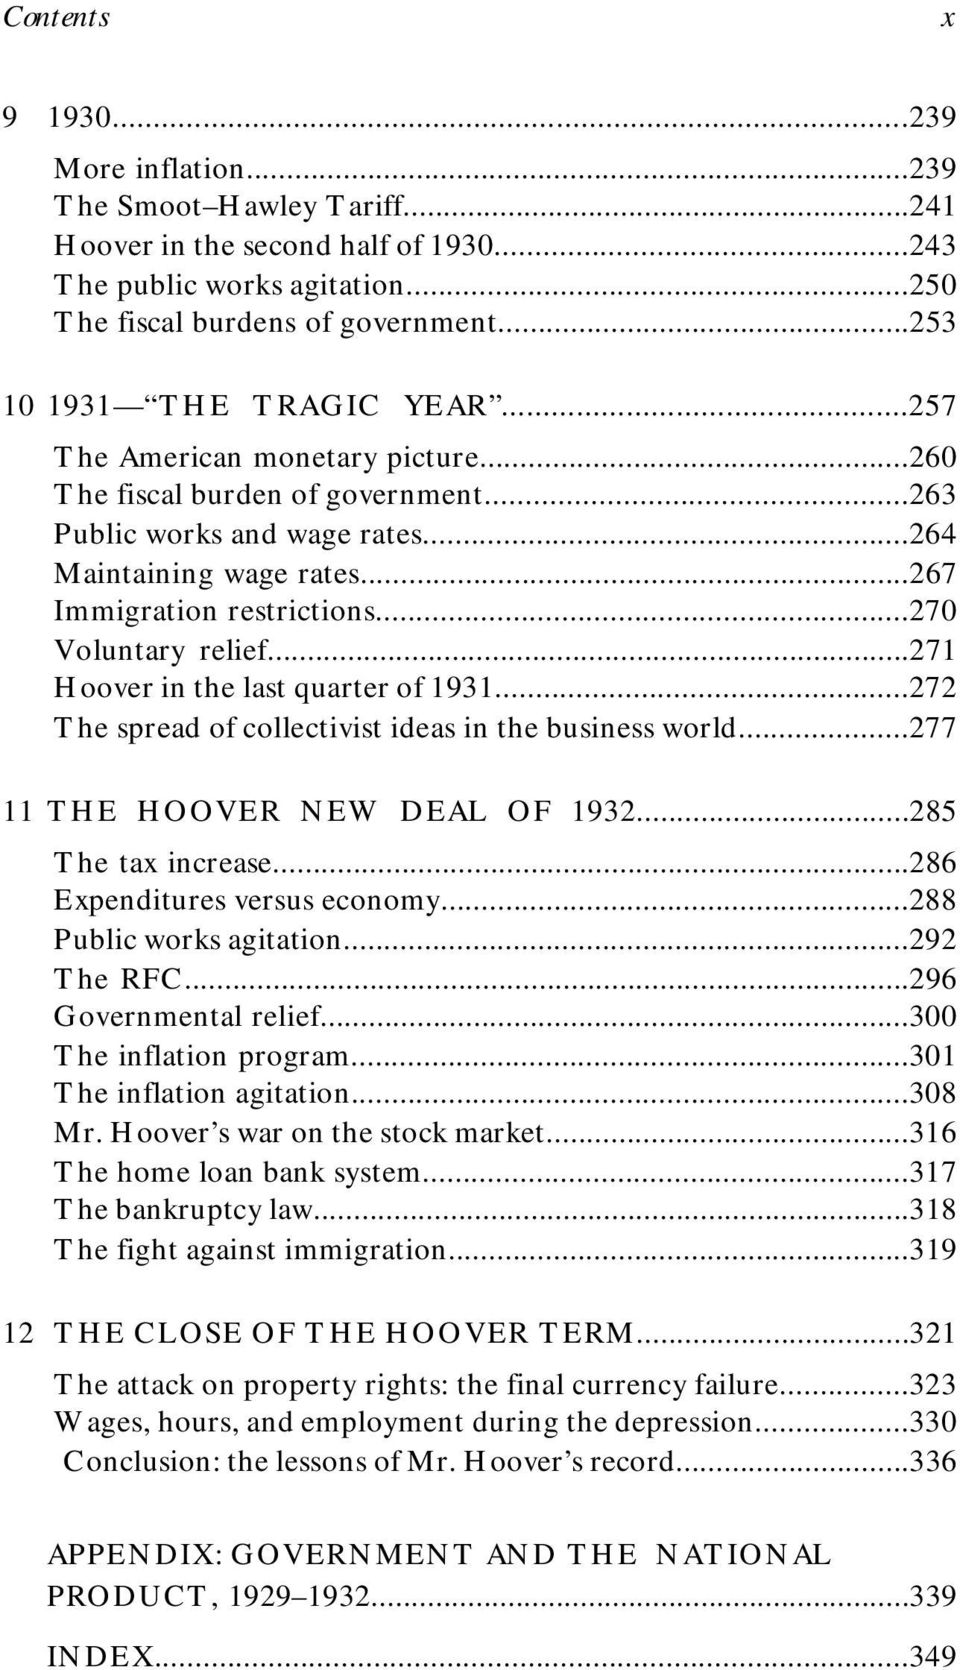 ..270 Voluntary relief...271 Hoover in the last quarter of 1931...272 The spread of collectivist ideas in the business world...277 11 THE HOOVER NEW DEAL OF 1932...285 The tax increase.